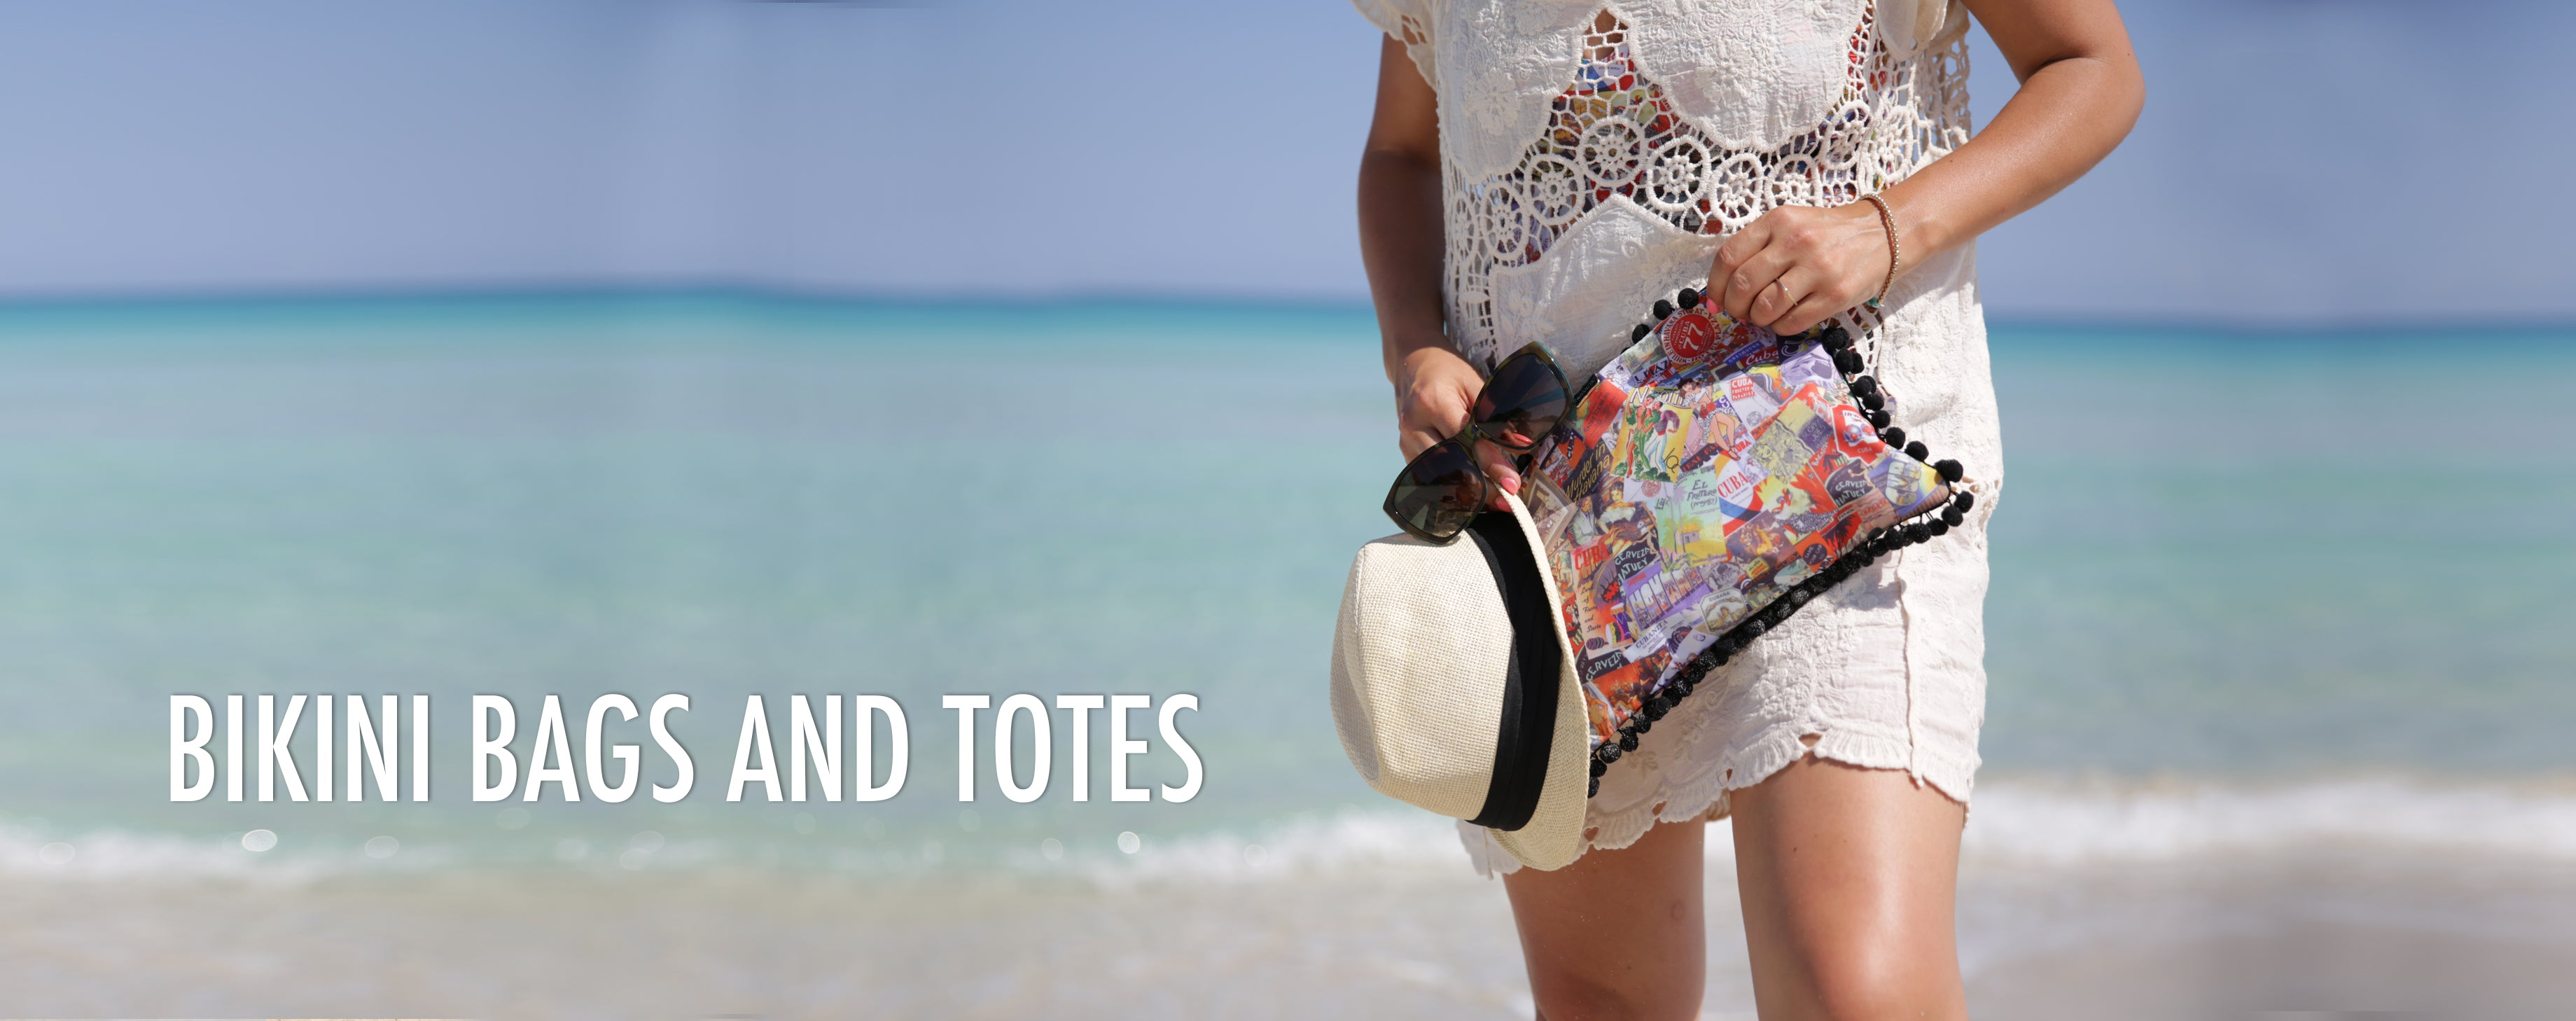 bikini bags and beach totes